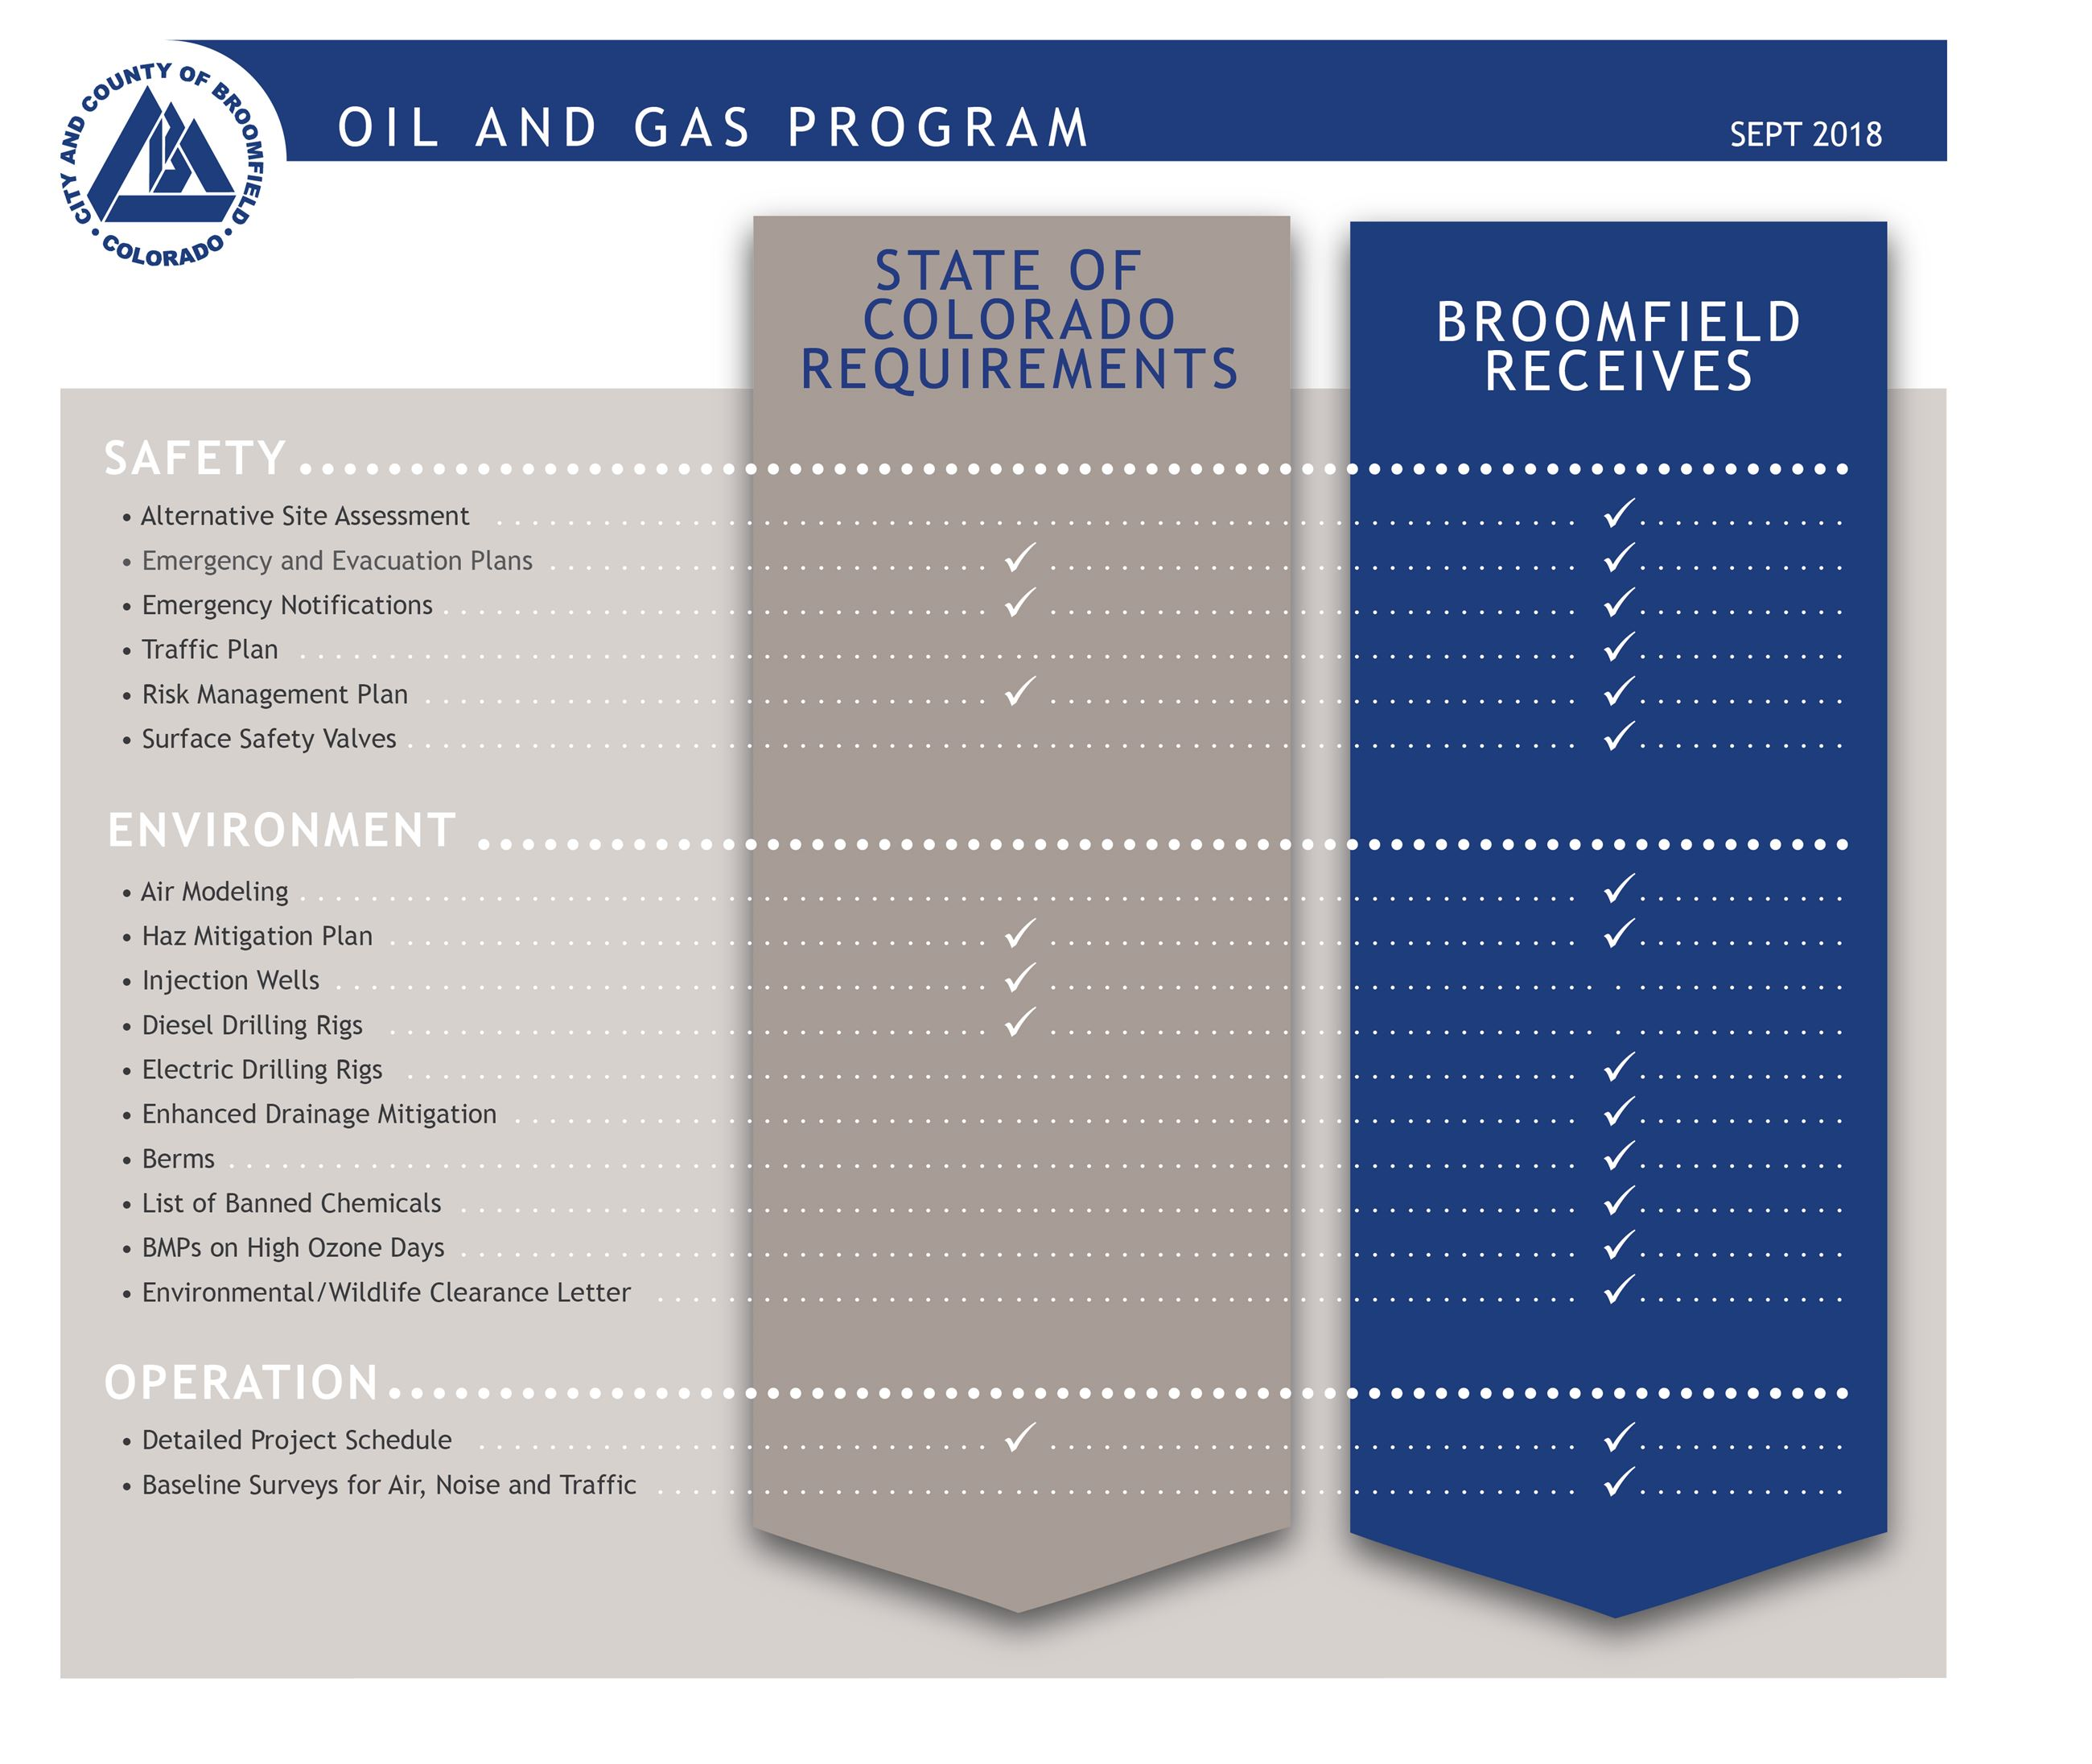 Oil and Gas Requirements graphic